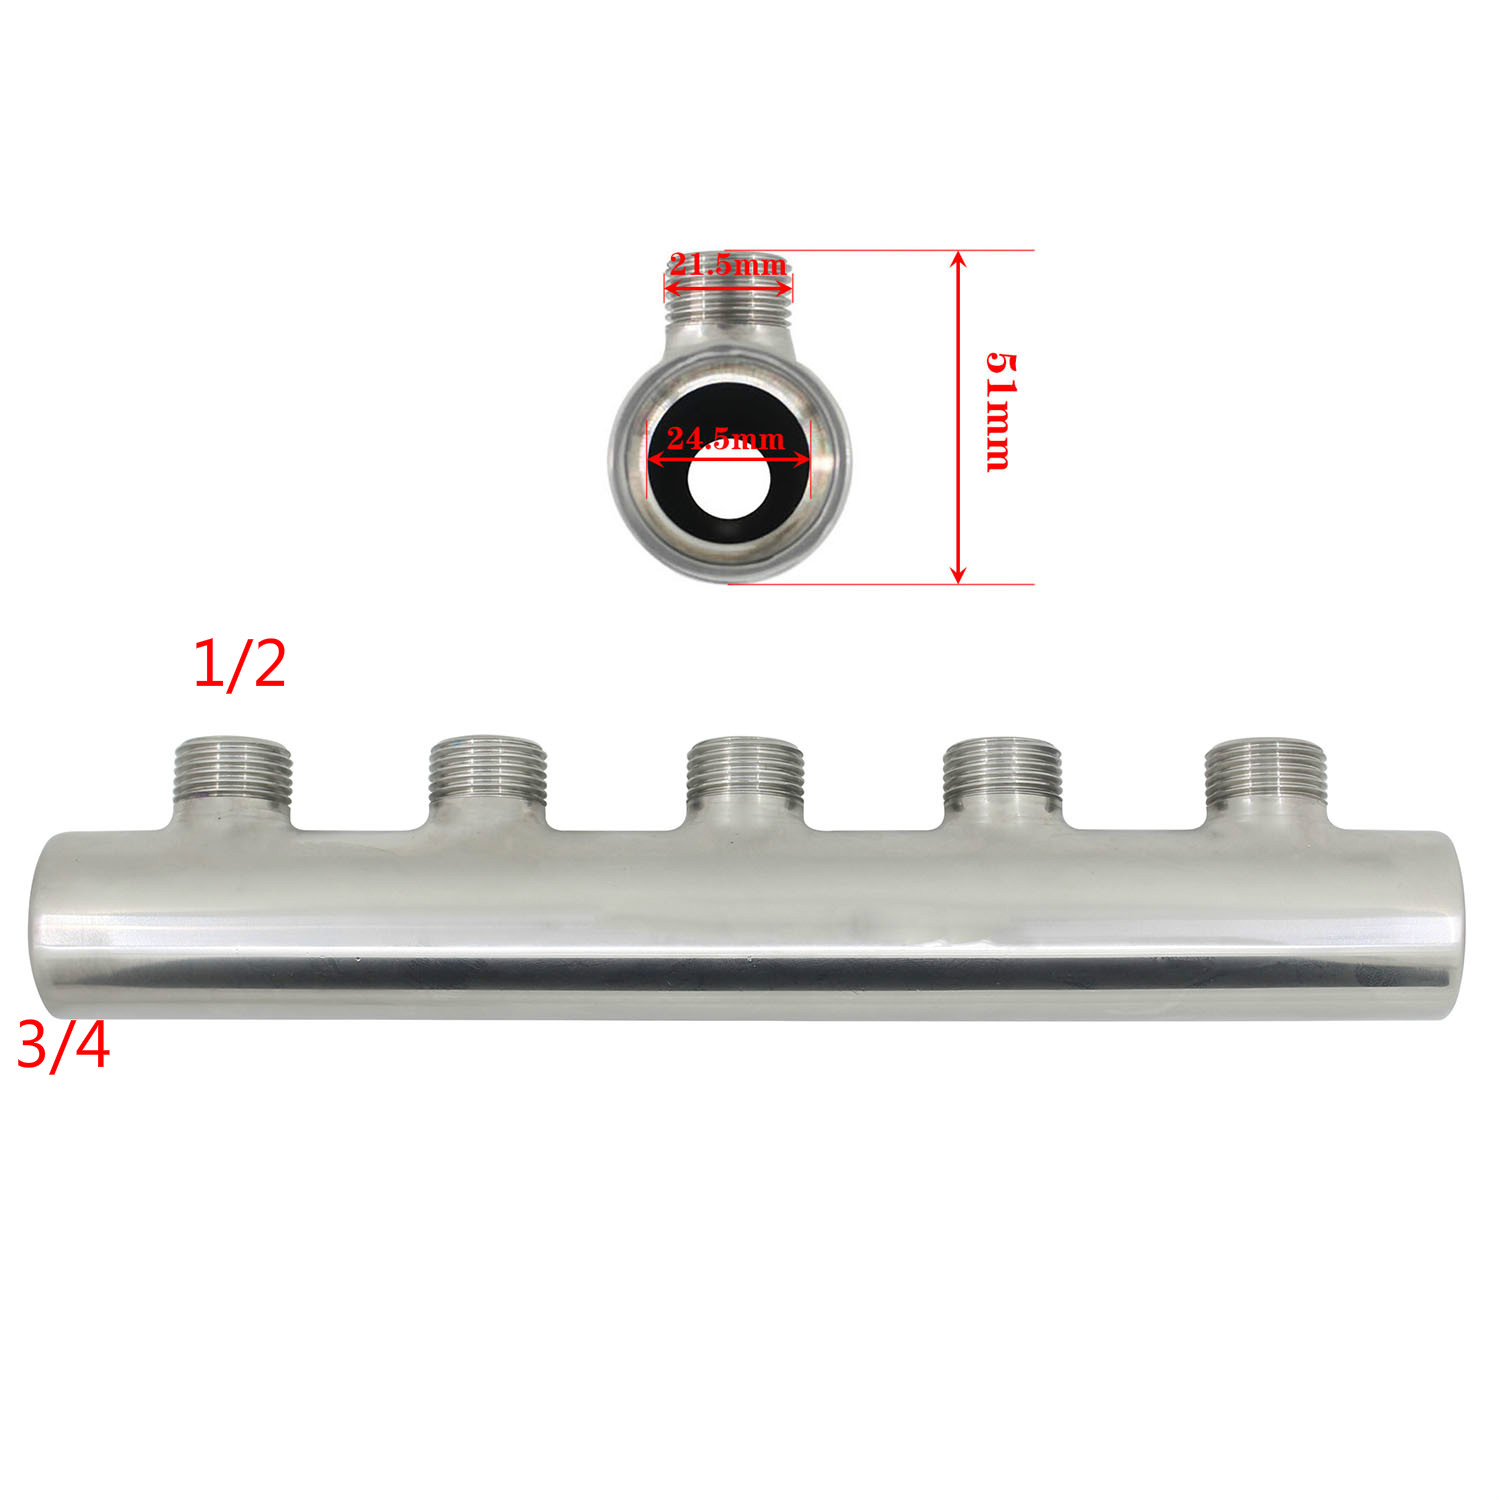 3/4*1/2  Stainless Steel Water Distribution Manifold For Underfloor Heating System(2-12 Port)  Open At Both Ends